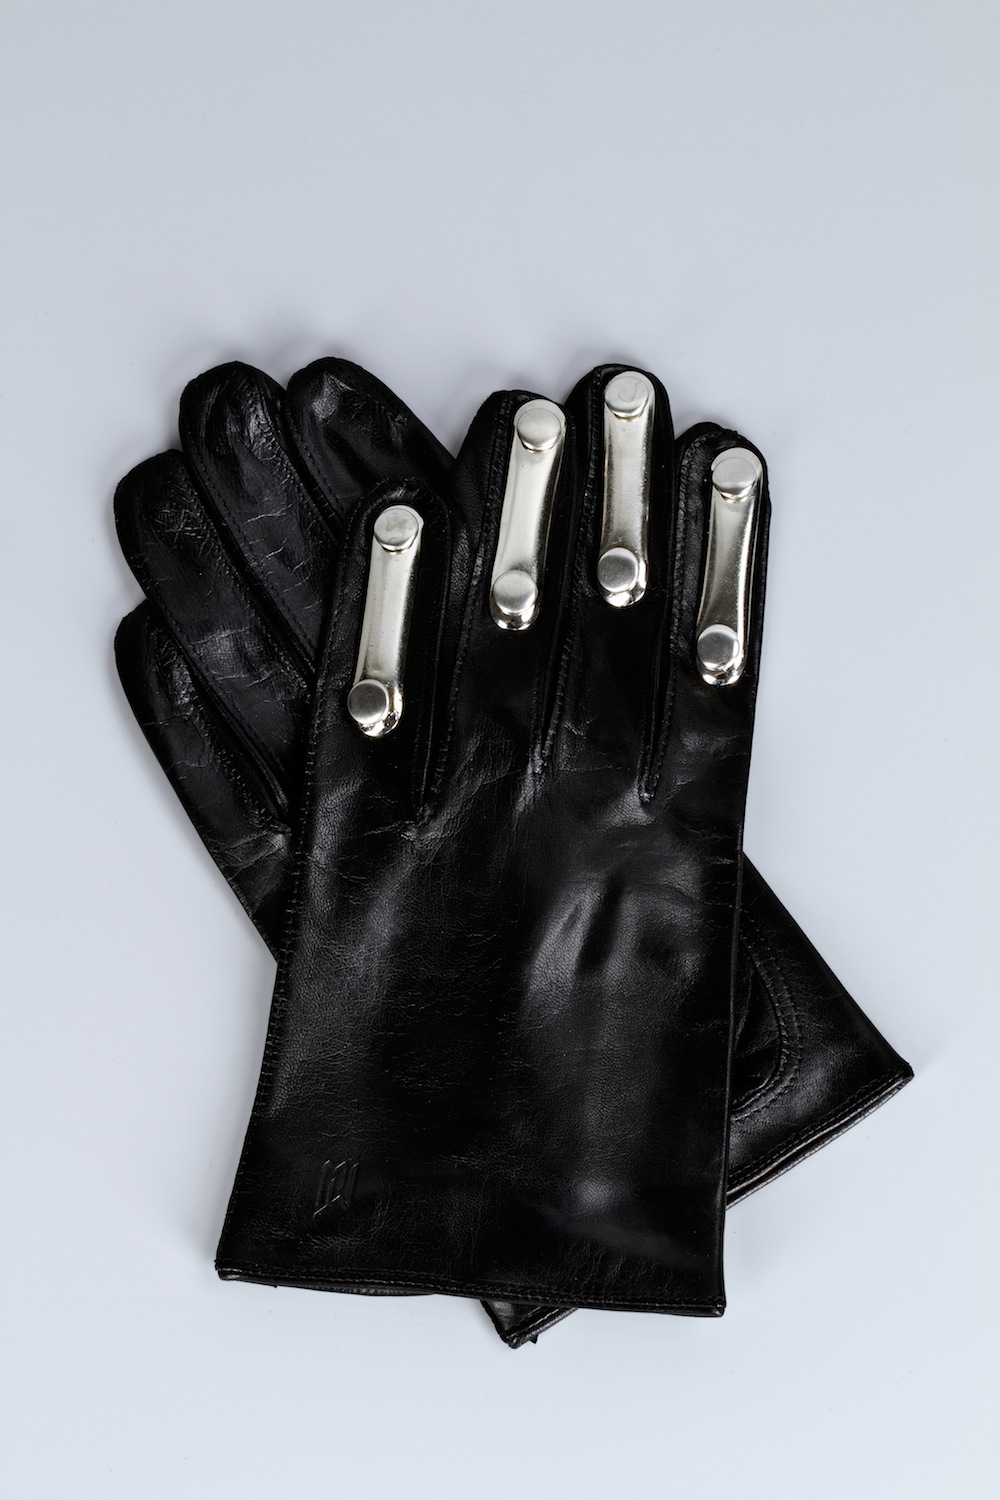 Lambskin Glove with Metallic Elements / Fall-Winter 2013 / Mark Molnar